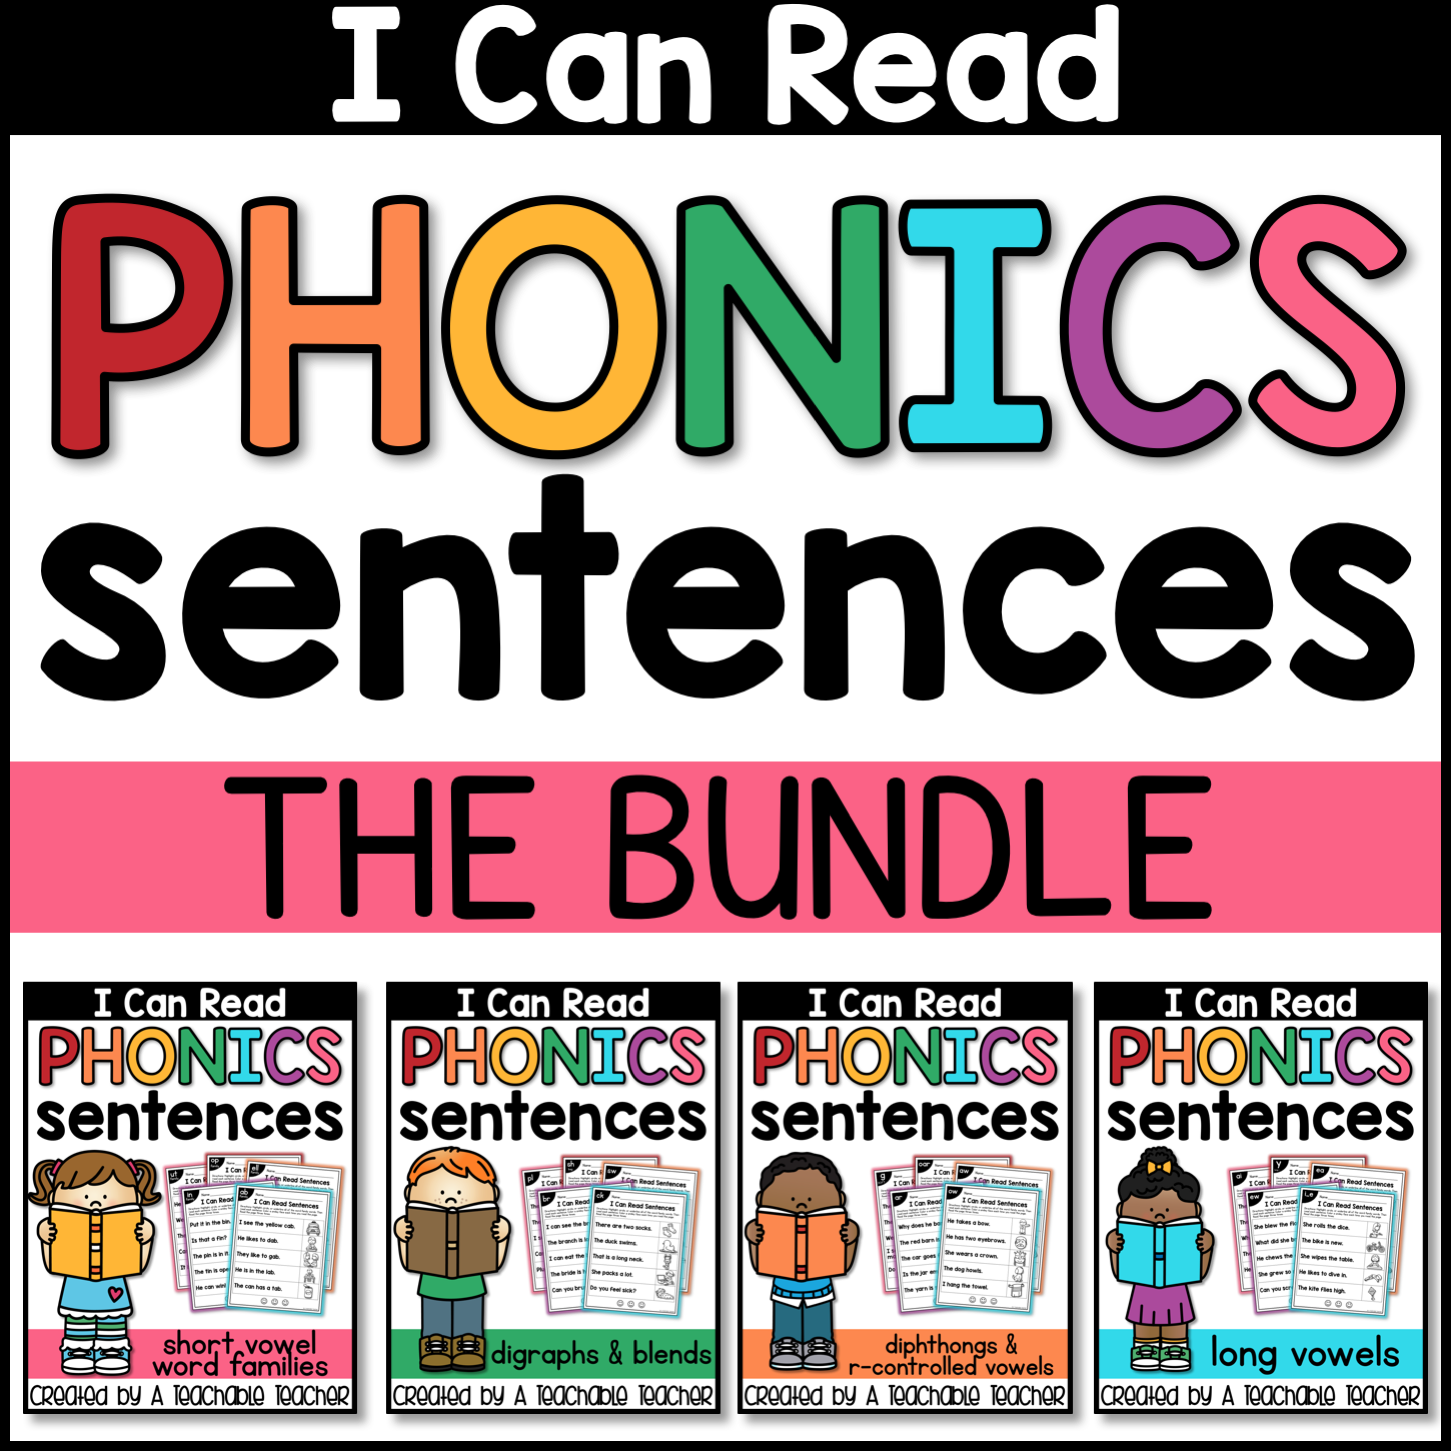 FREE Phonics Sentences Activities to Build Mastery and Fluency